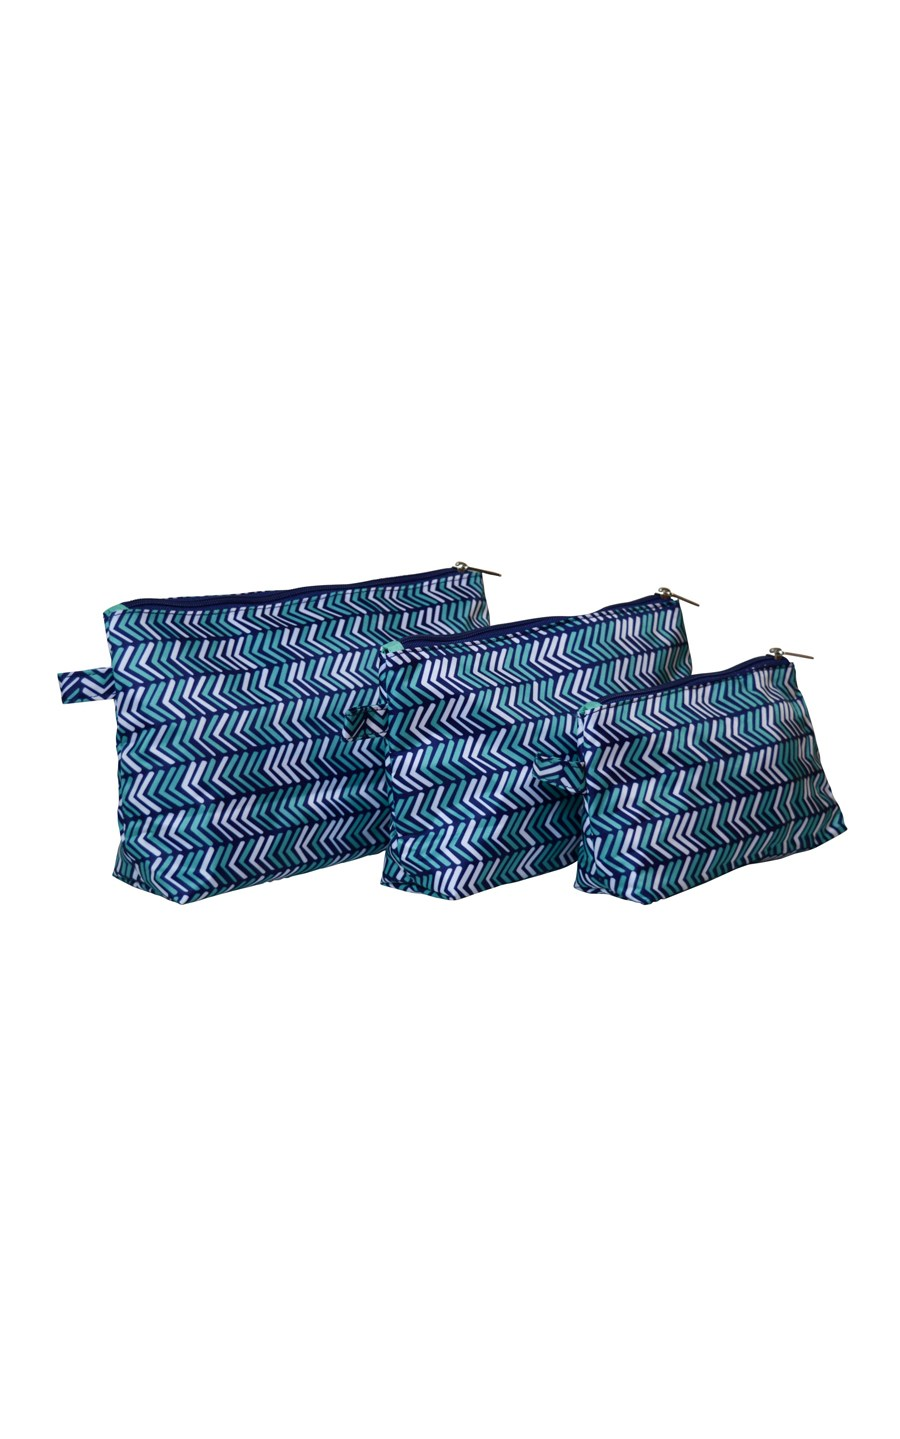 All For Color-Vacay This Way 3 Piece Cosmetic Bag Set - FINAL SALE-Cosmetic Cases